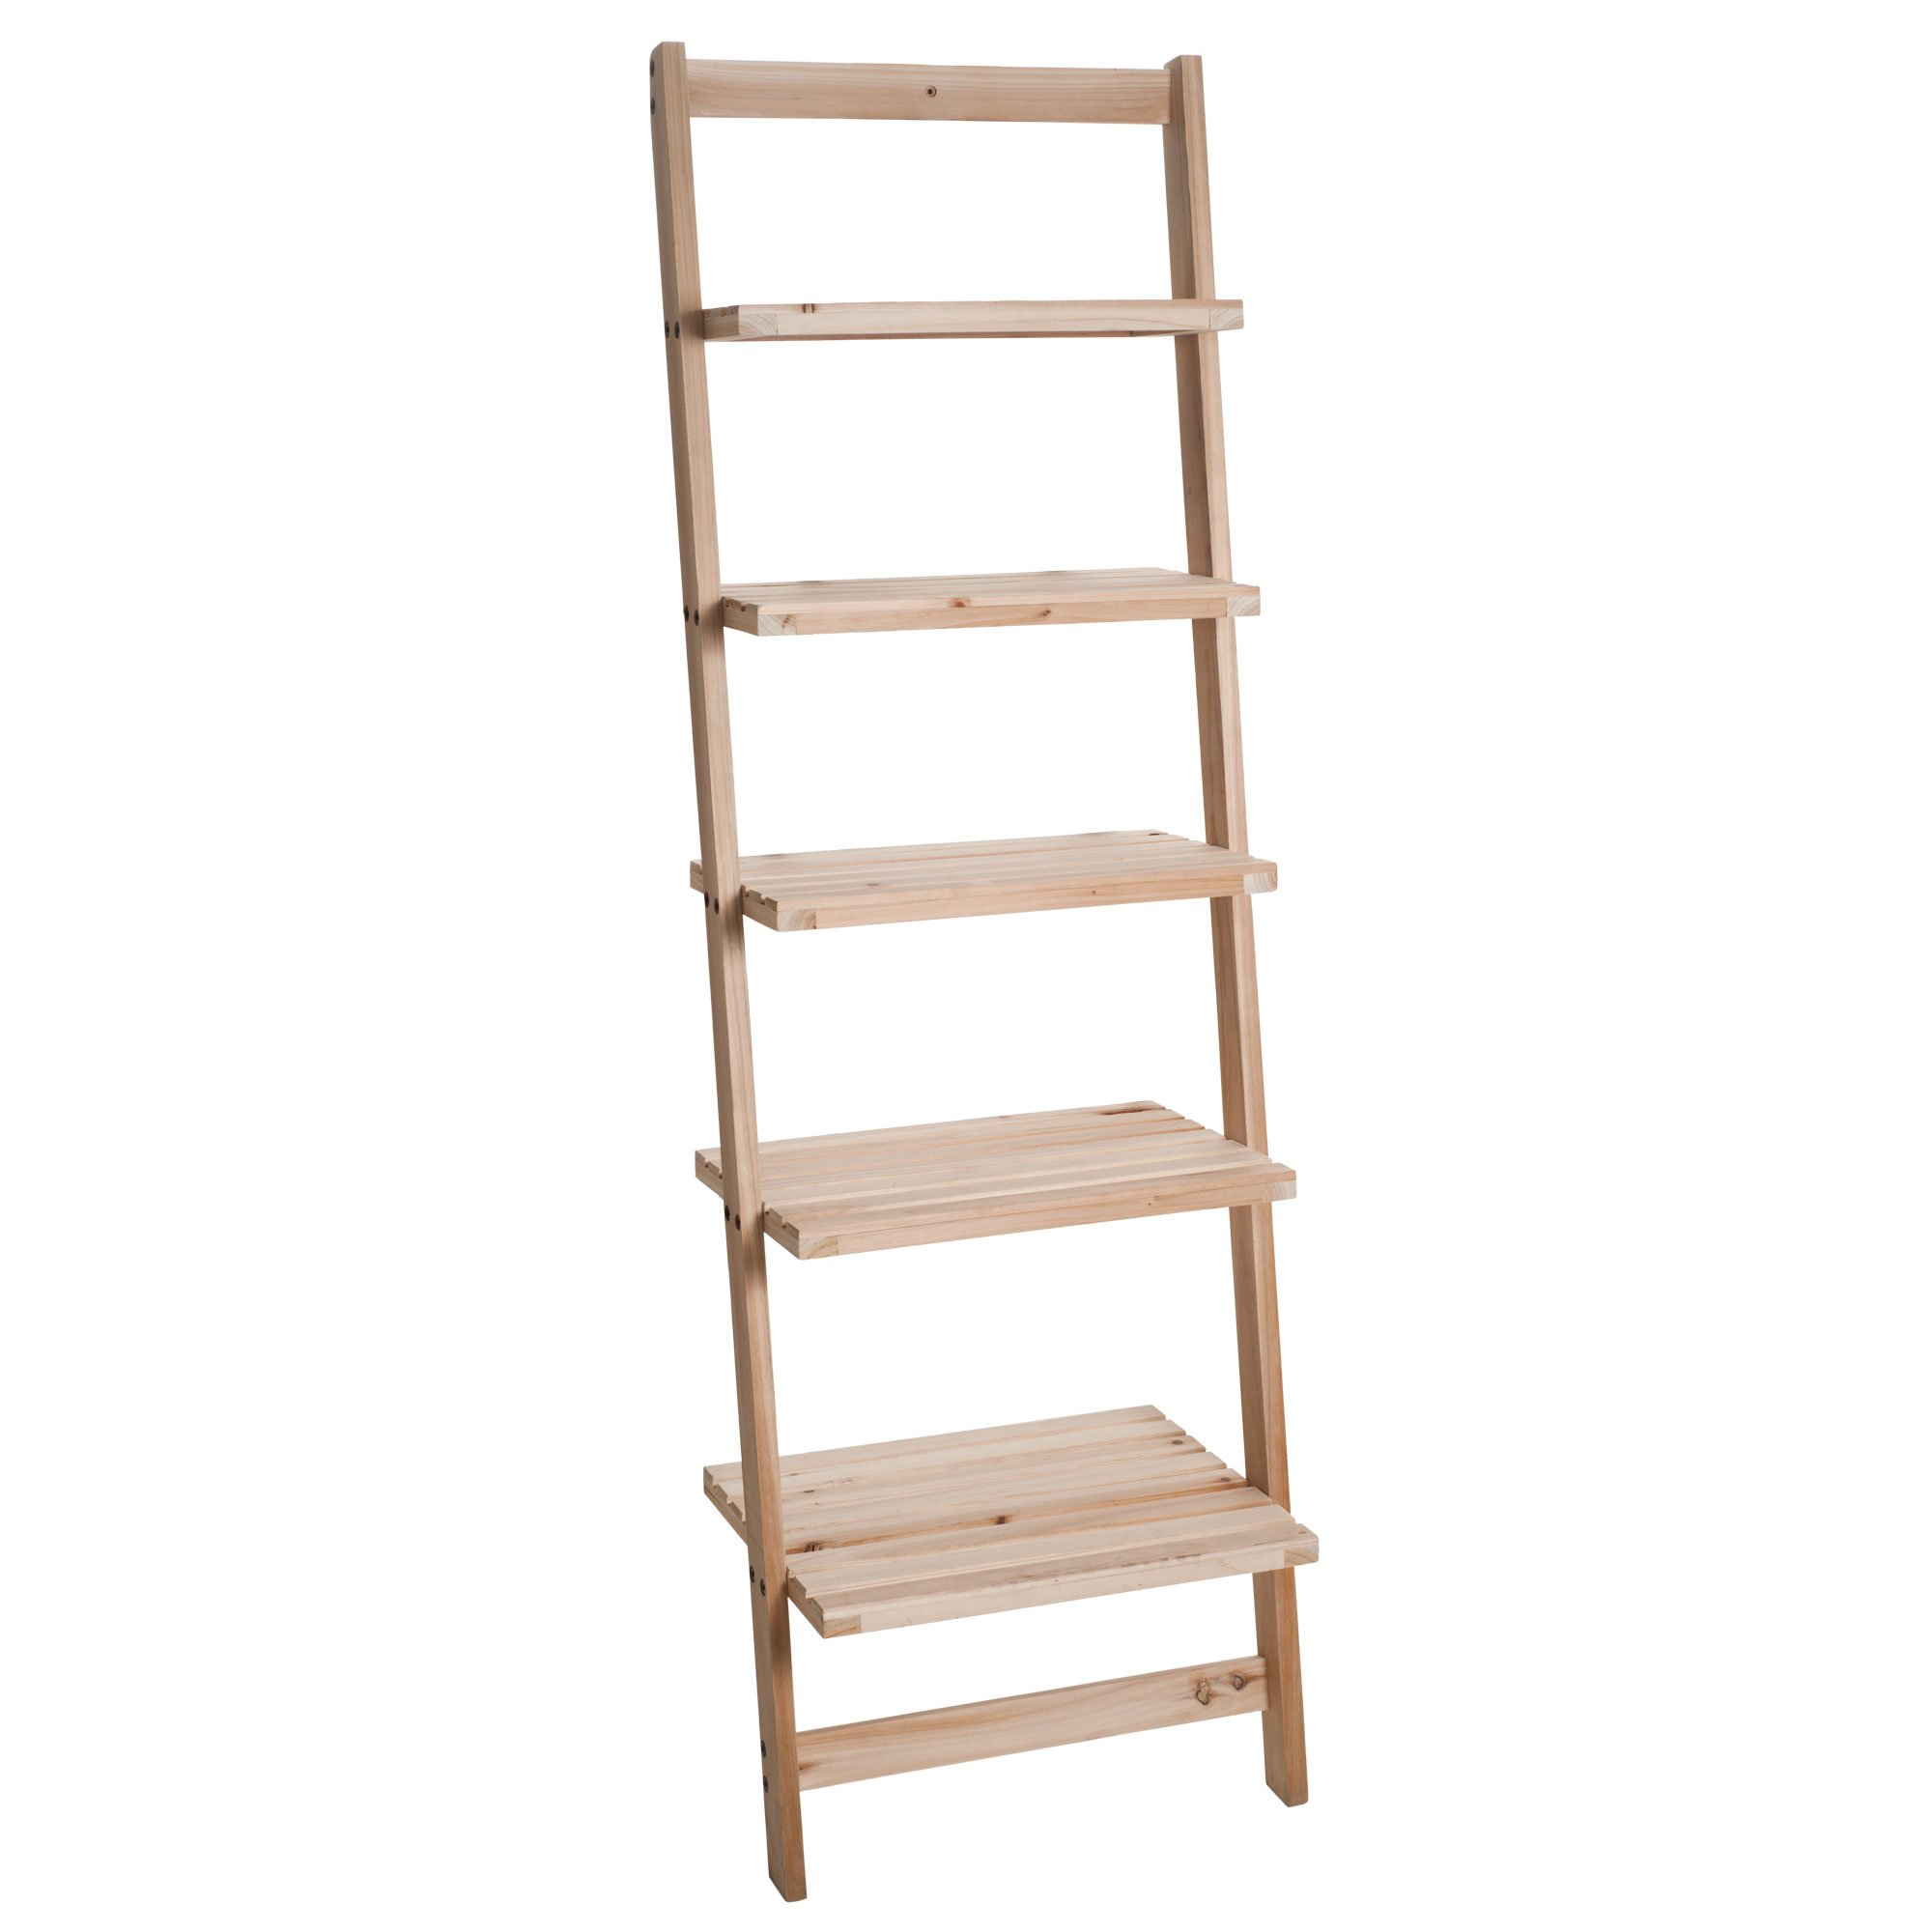 Book Shelf for Living Room, Bathroom, and Kitchen Shelving, Home Décor by Lavish Home- 5-Tier Decorative Leaning Ladder Shelf- Wood Display Shelving by Lavish Home